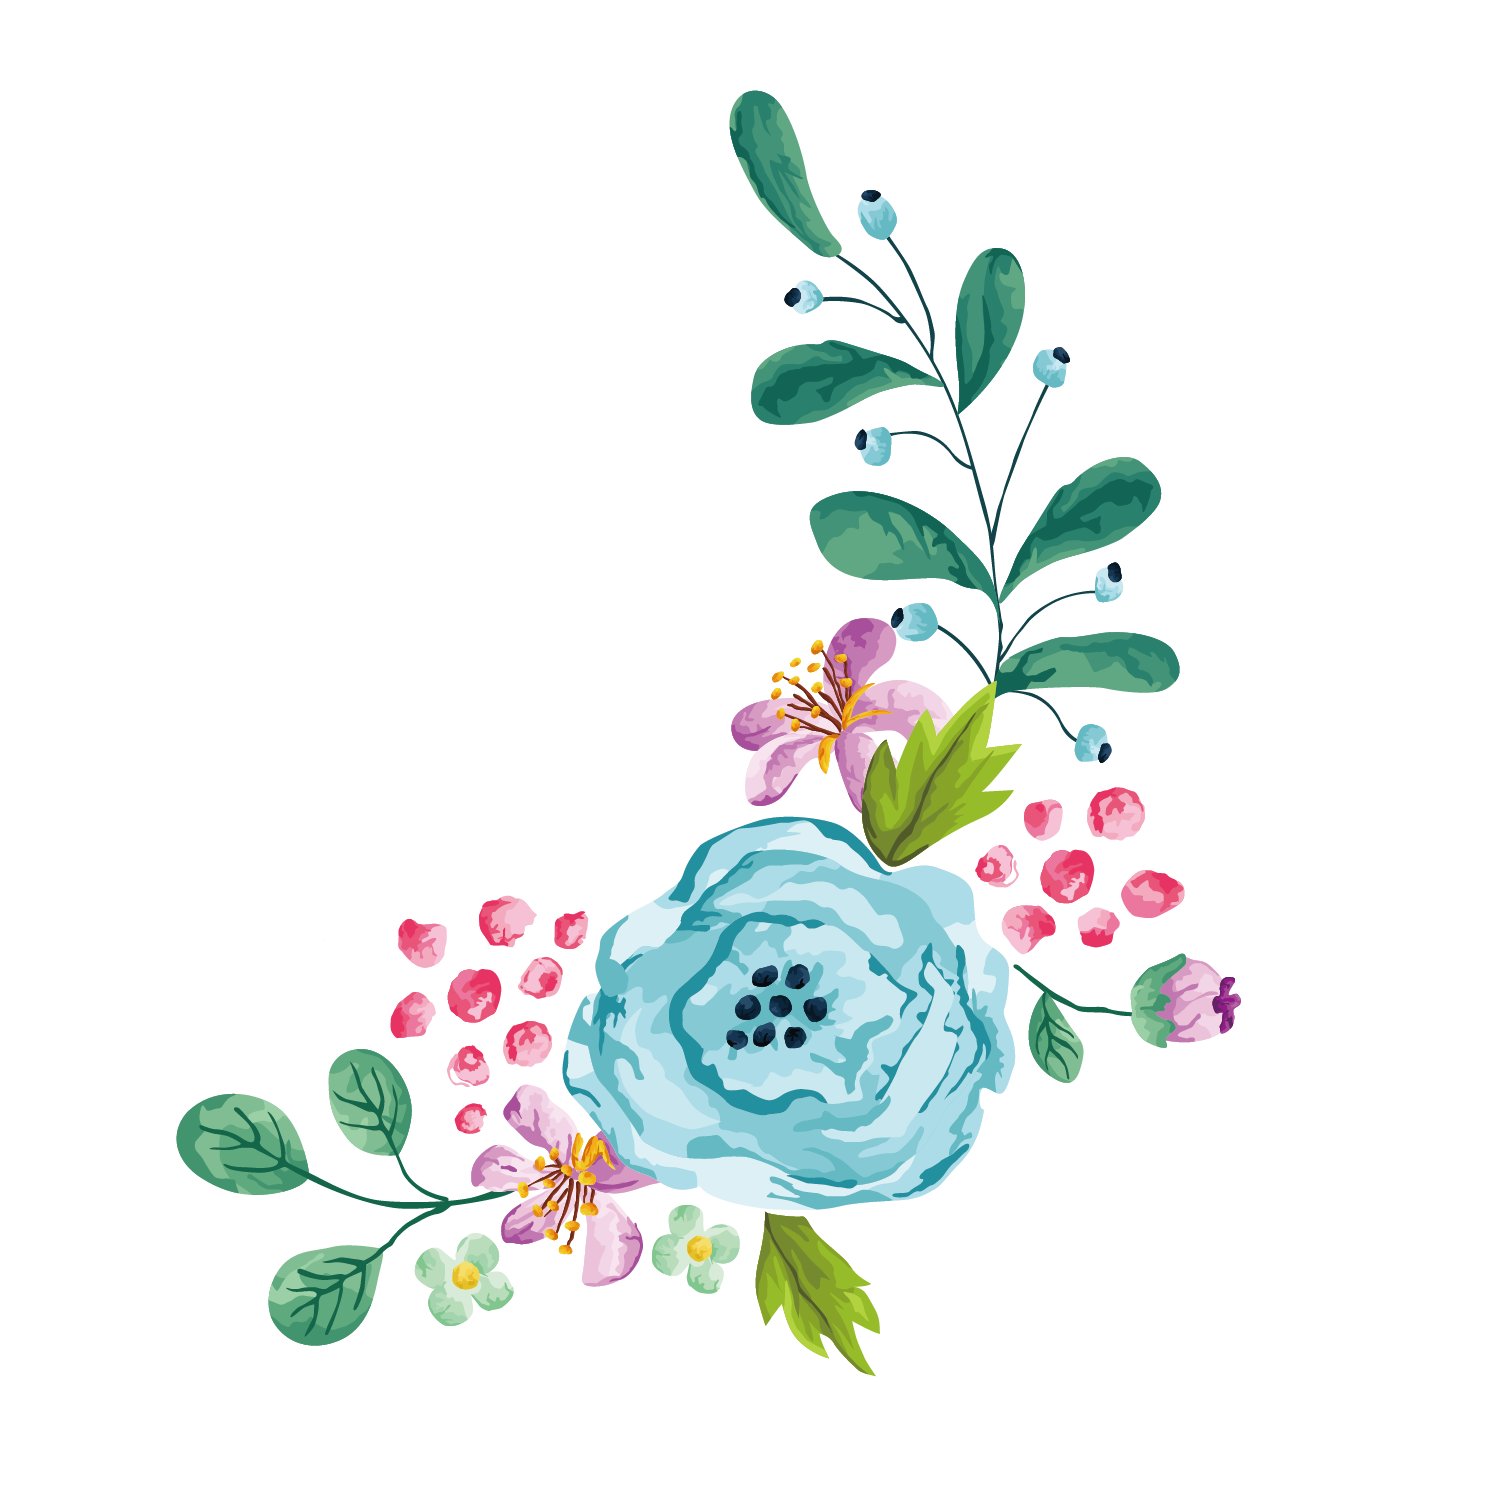 Peony clipart plant, Peony plant Transparent FREE for